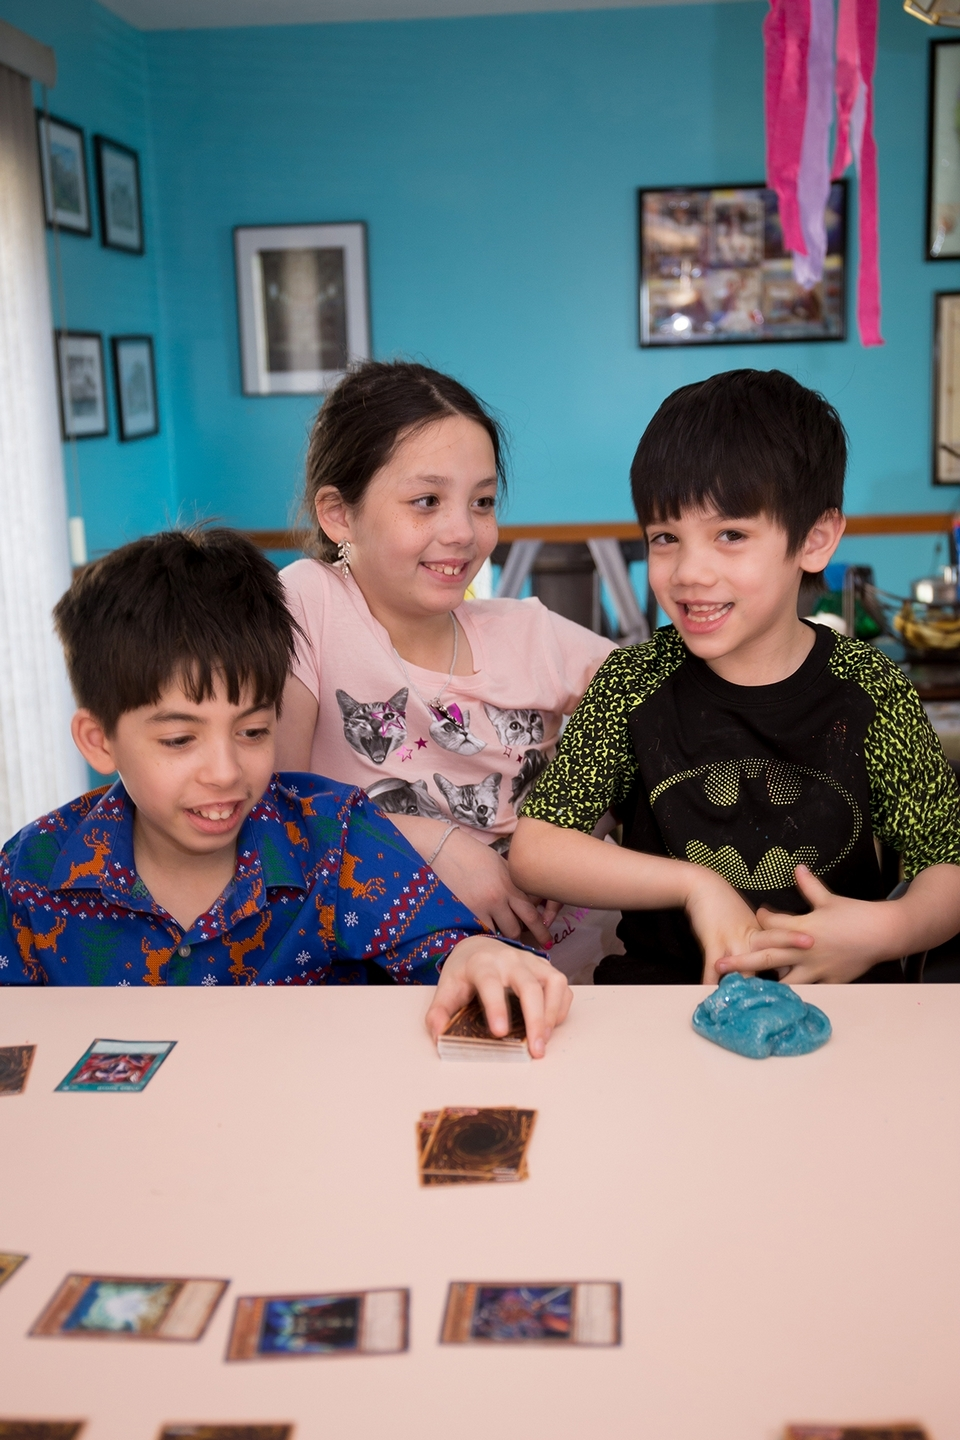 Brady, 11, Prudence, 10, and Caleb, 6, play Yu-Gi-Oh! on a recent morning at home in Montville. (Renee Trafford photo)